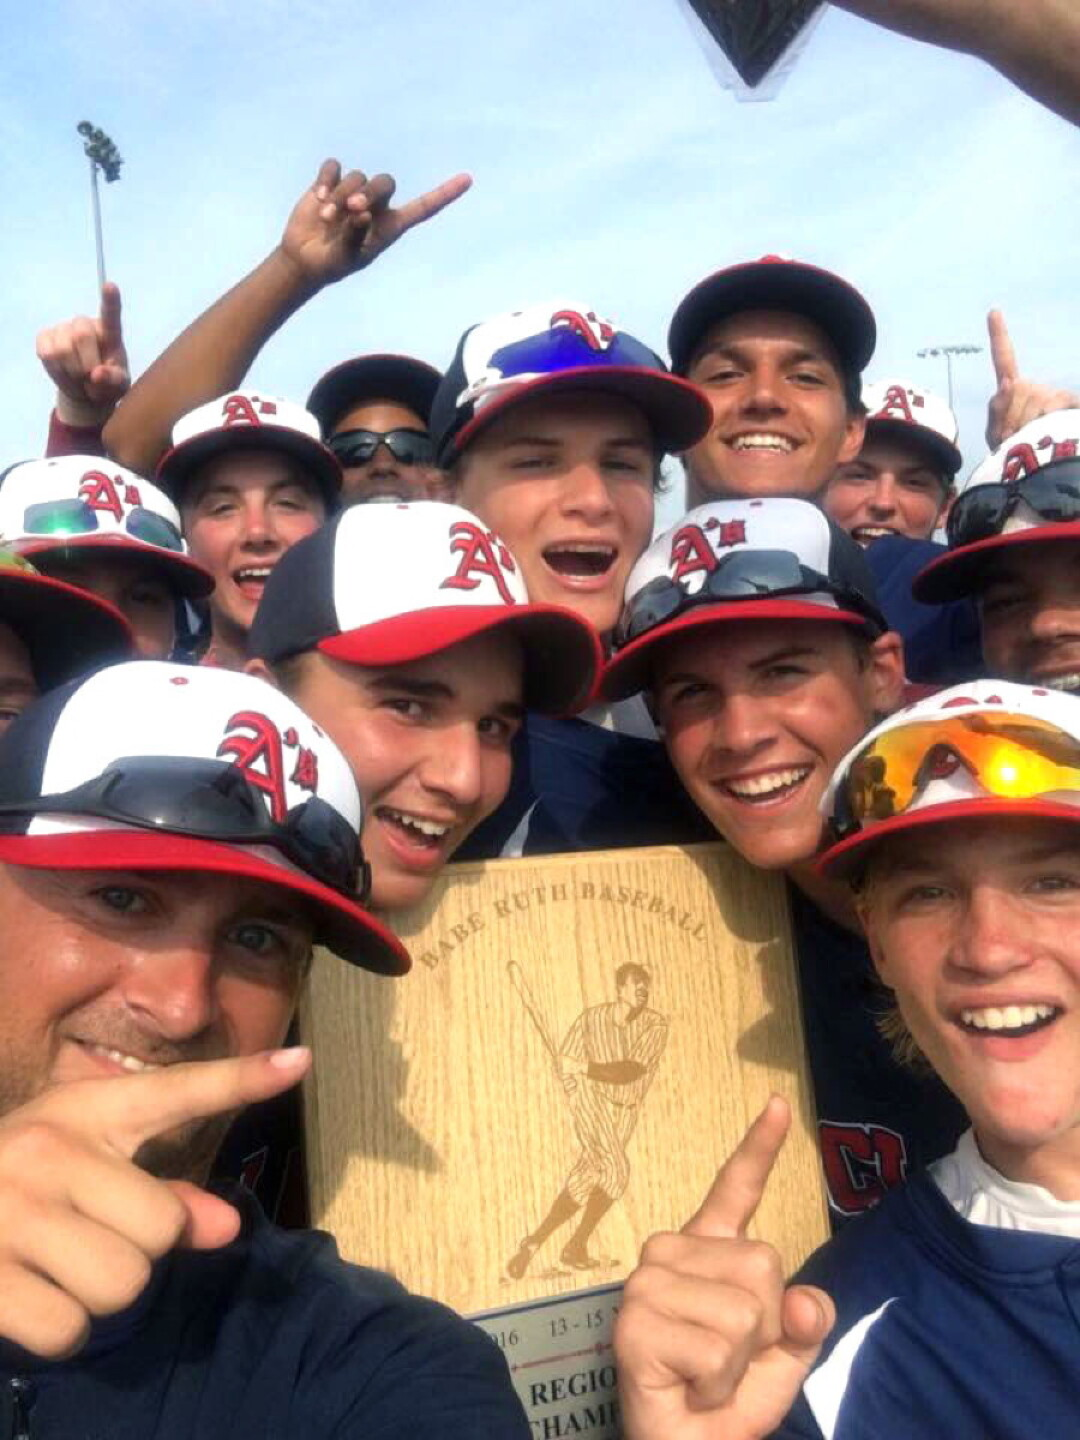 The Eau Claire Babe Ruth 15-and-under team celebrated its Regional title in July. The Eau Claire 13U team also won its regional tournament, and both teams are headed to their respective World Series.